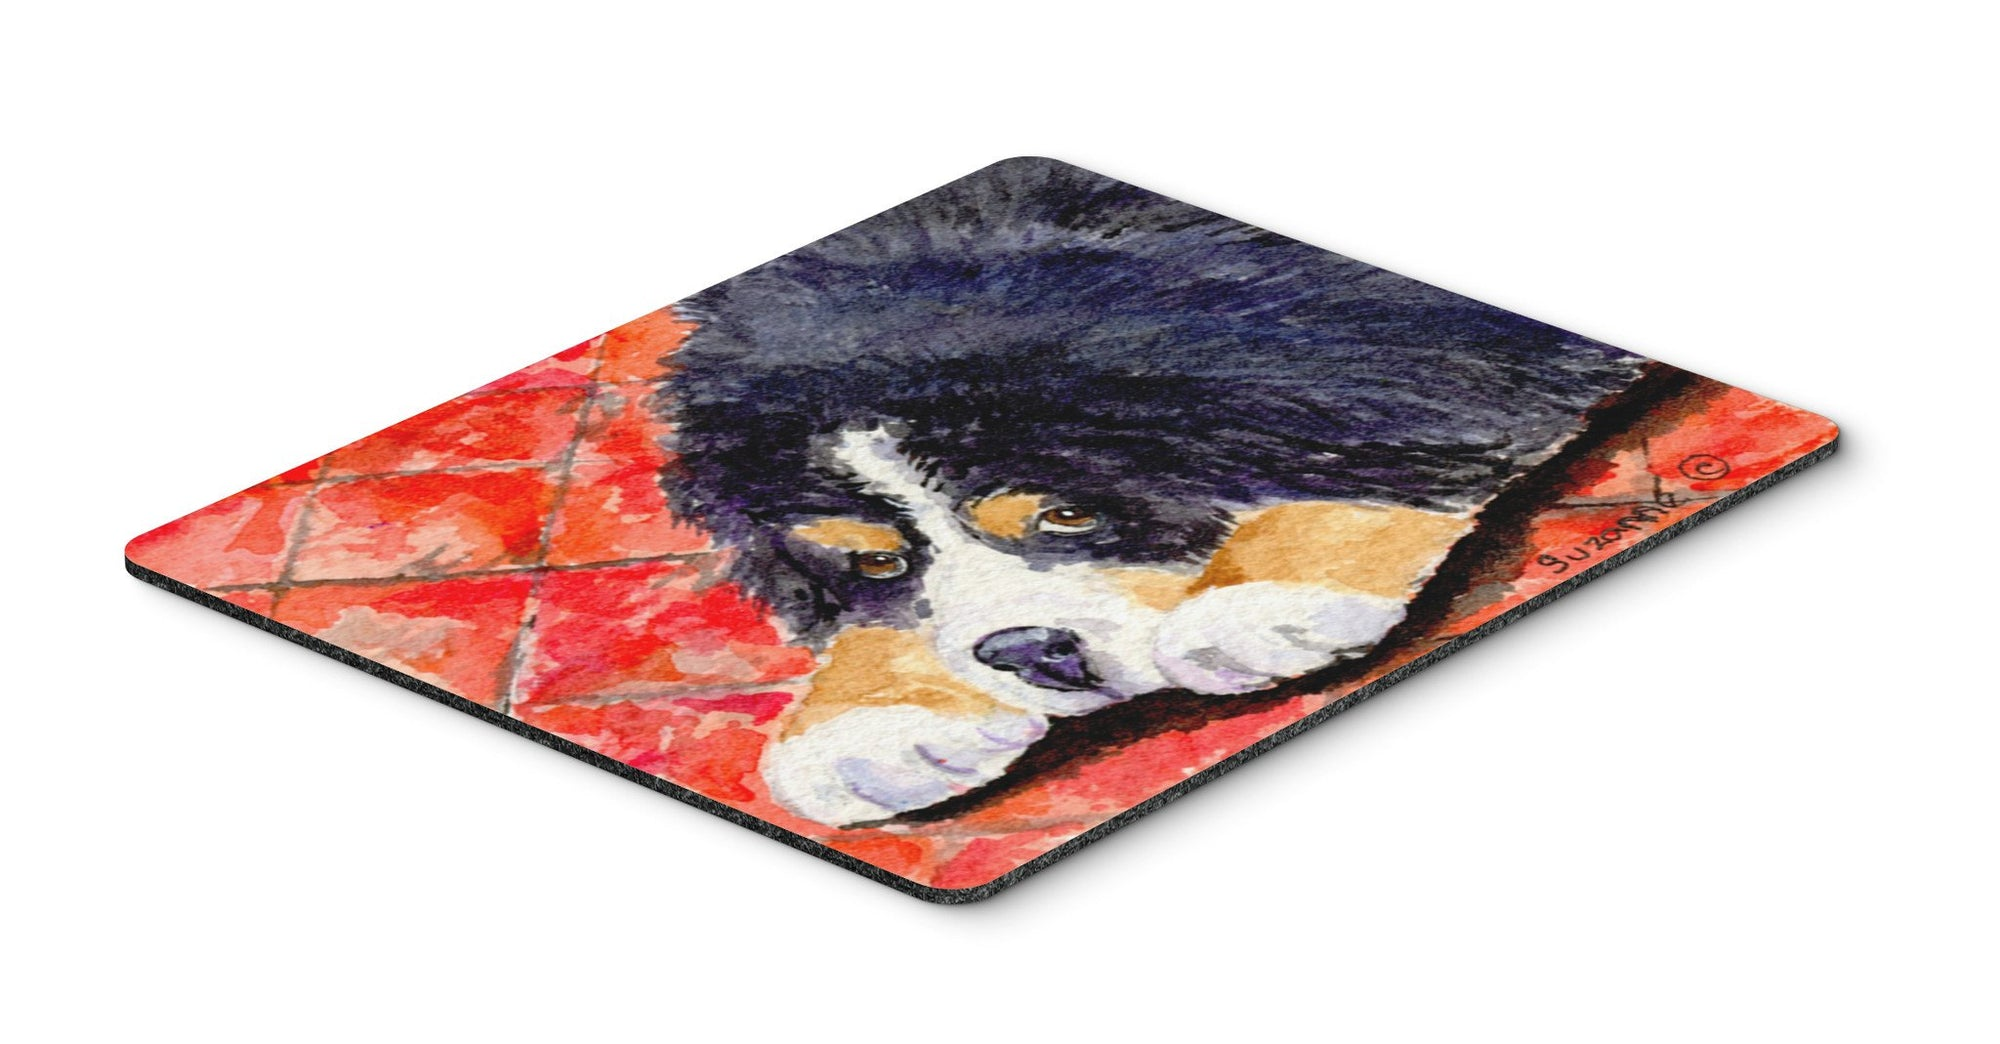 Bernese Mountain Dog Mouse pad, hot pad, or trivet by Caroline's Treasures